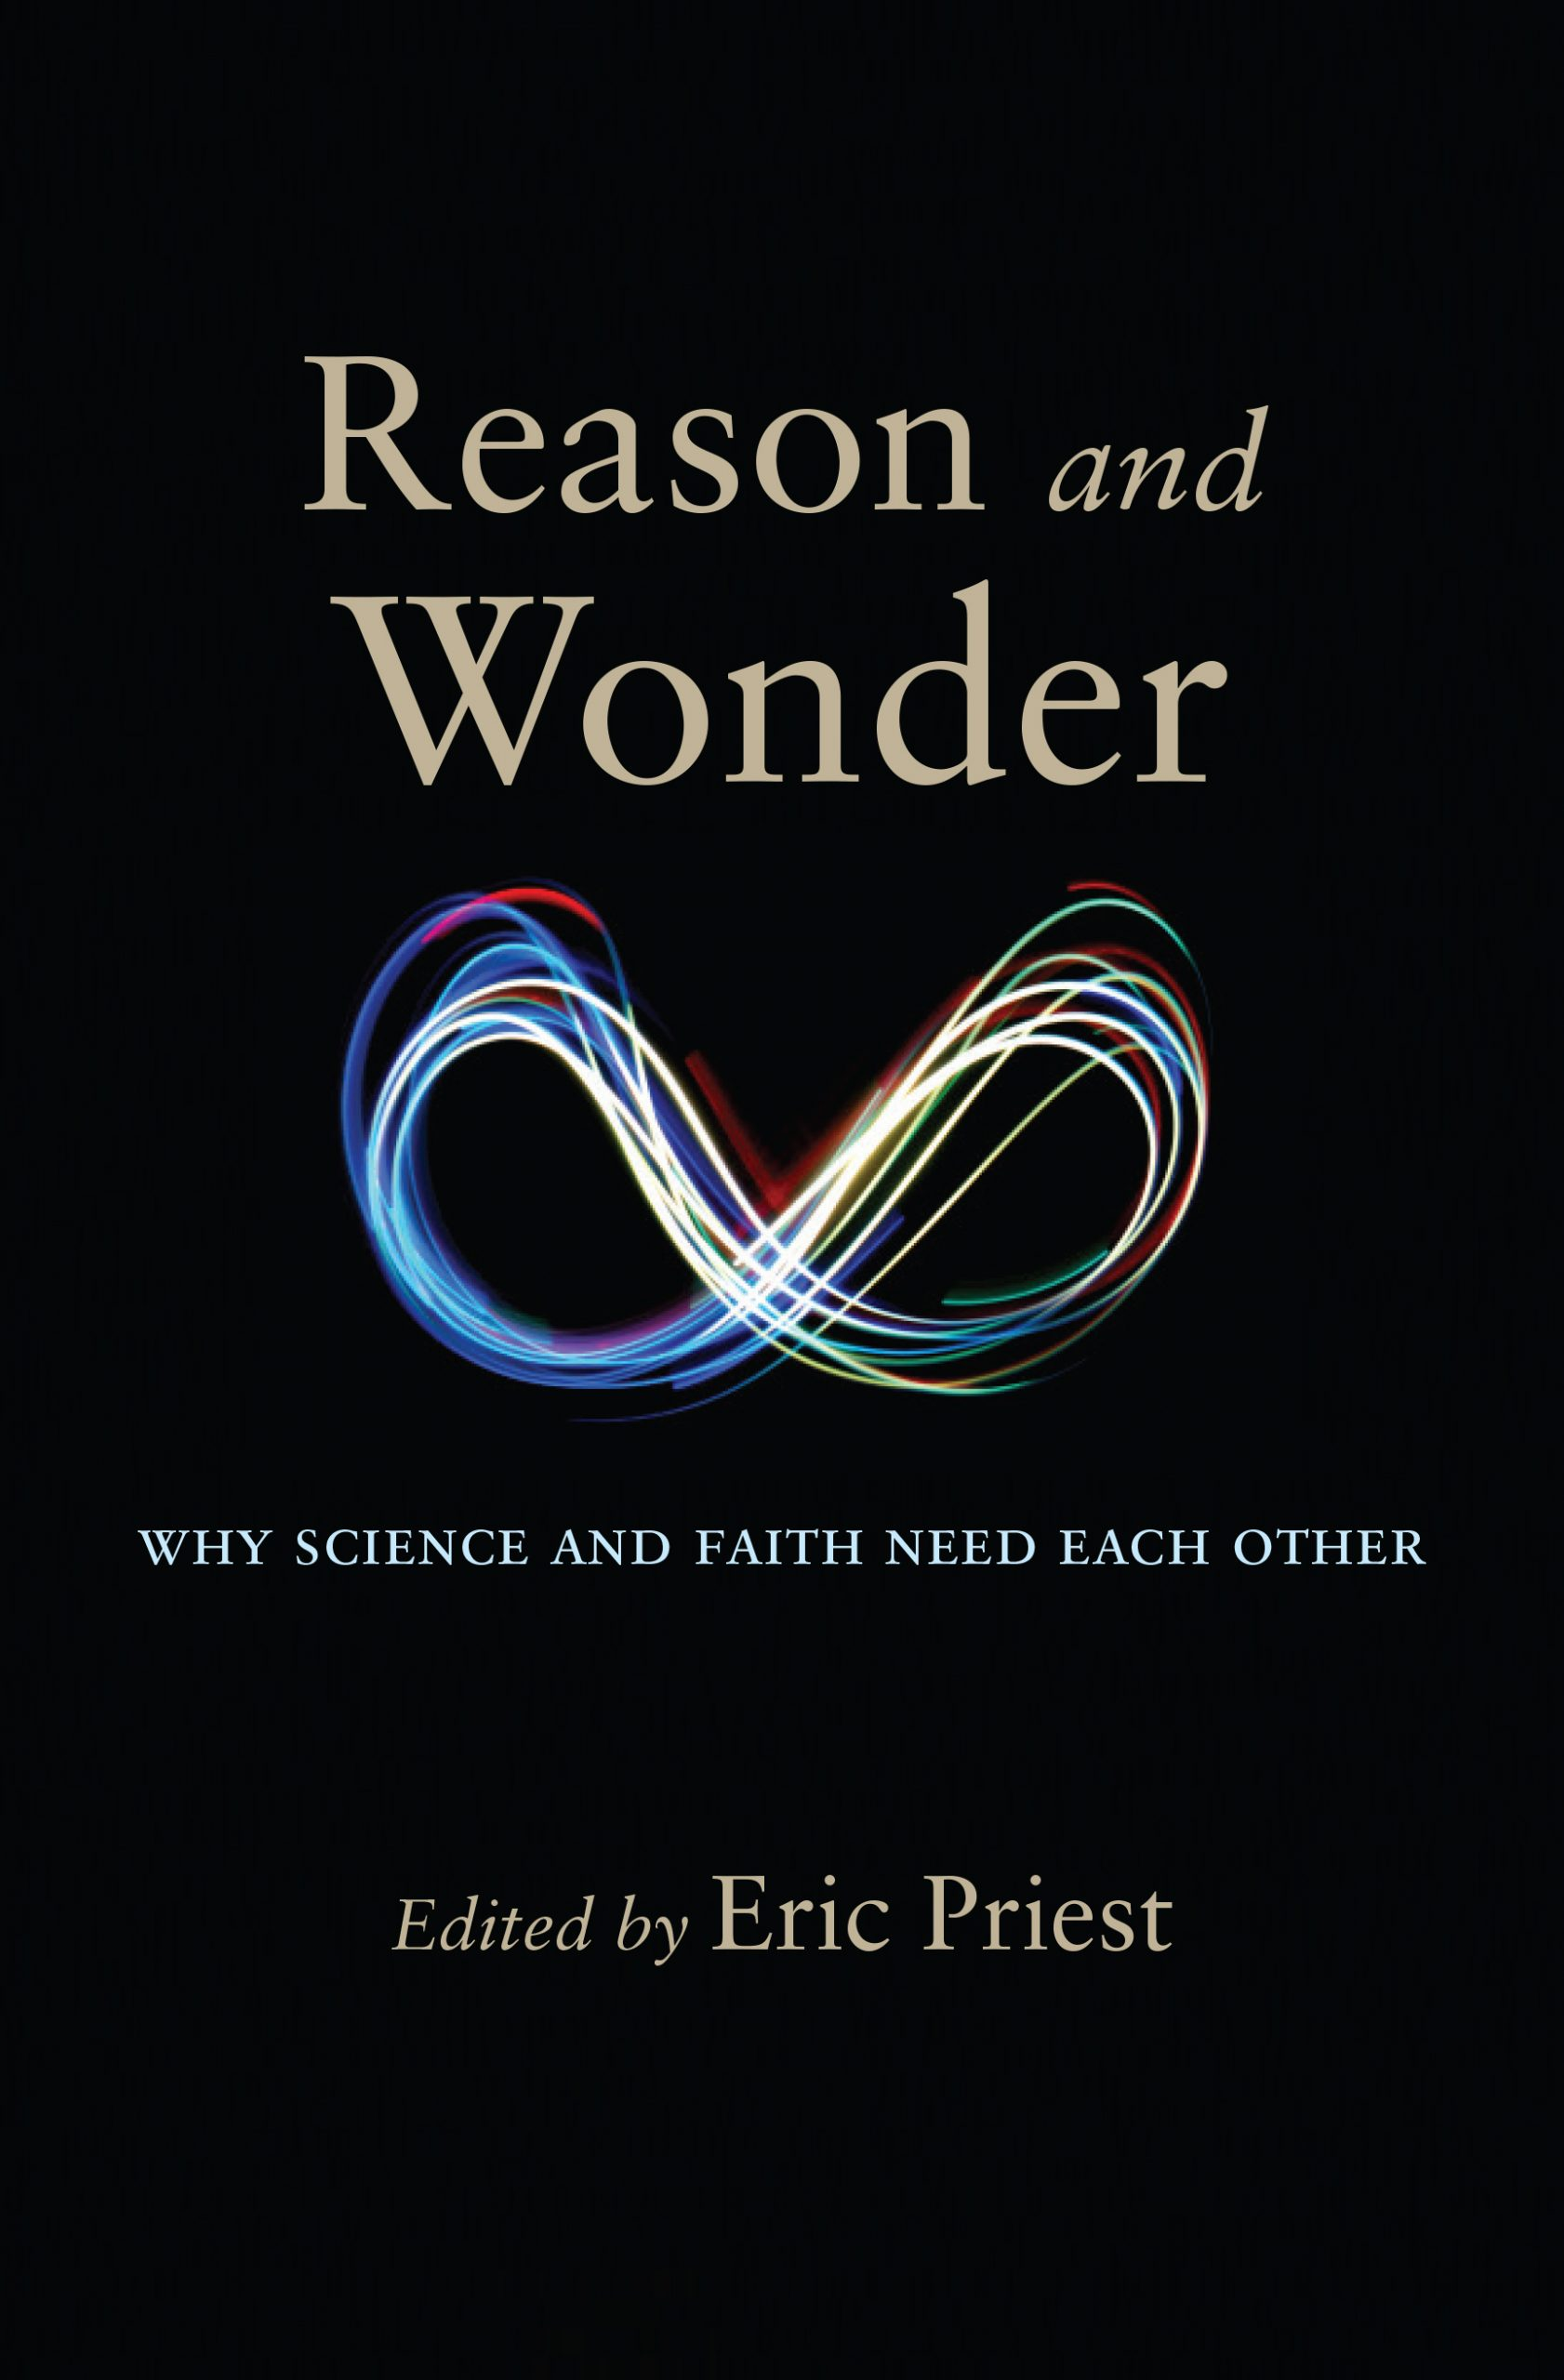 Reason and Wonder.indd